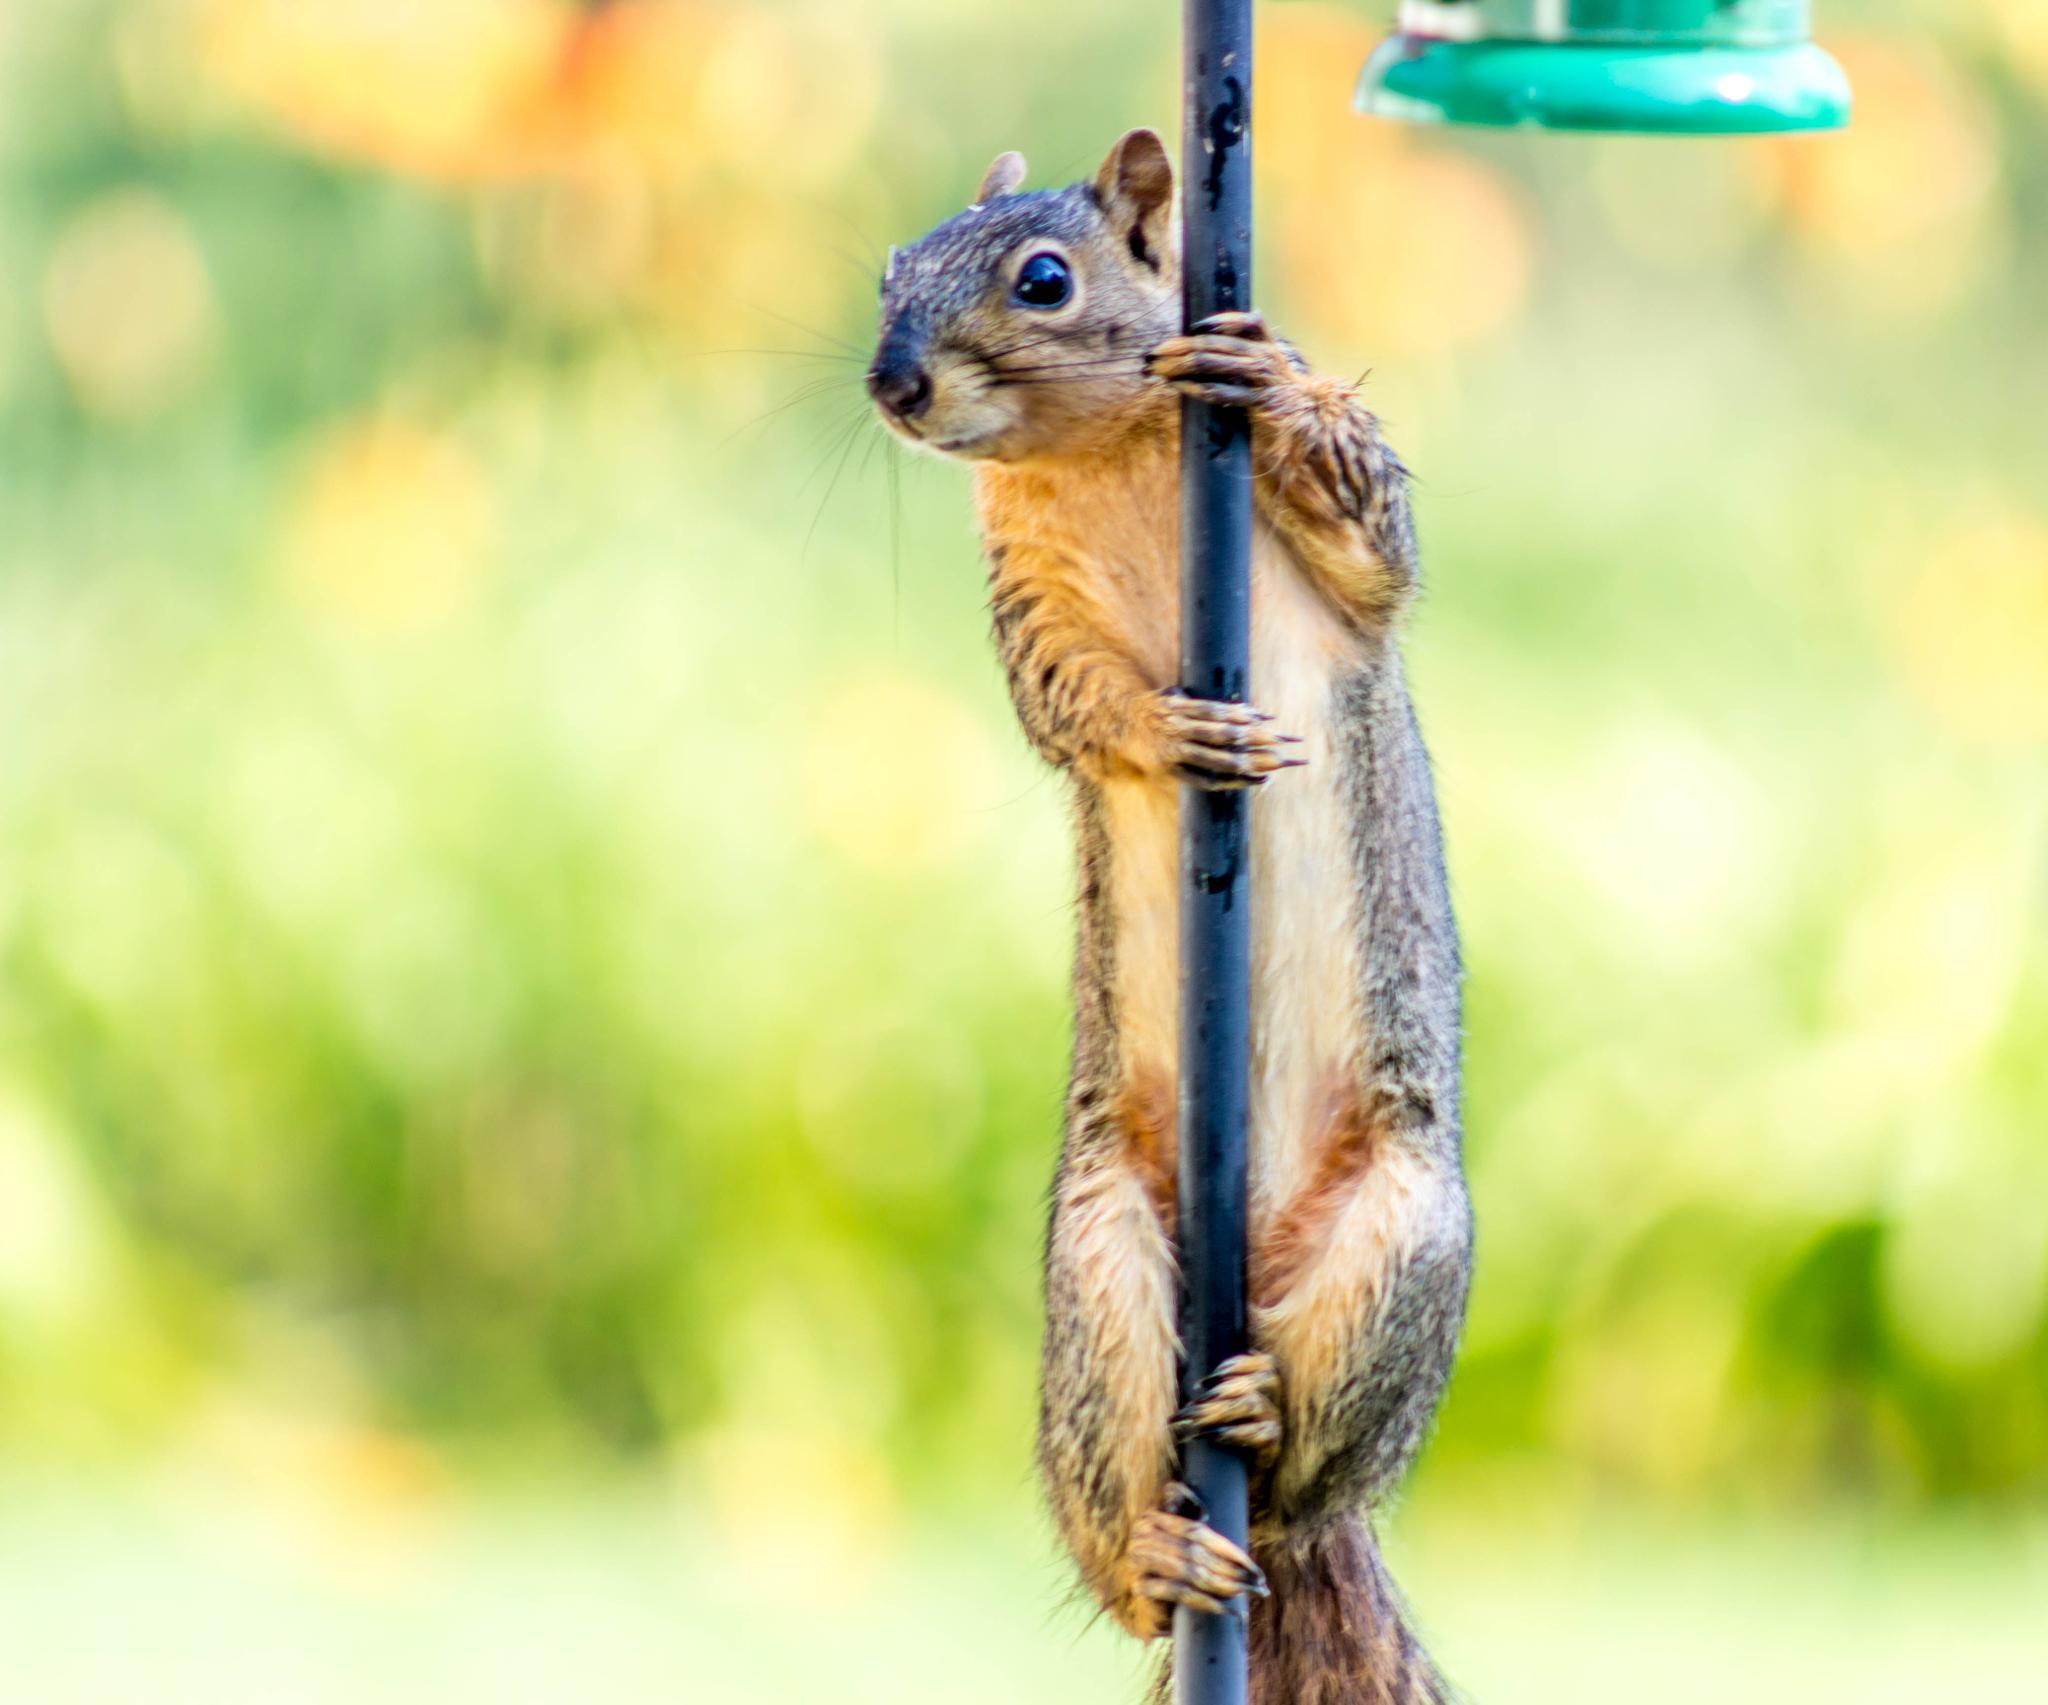 Pole Dancing Squirrel by Keith Fife